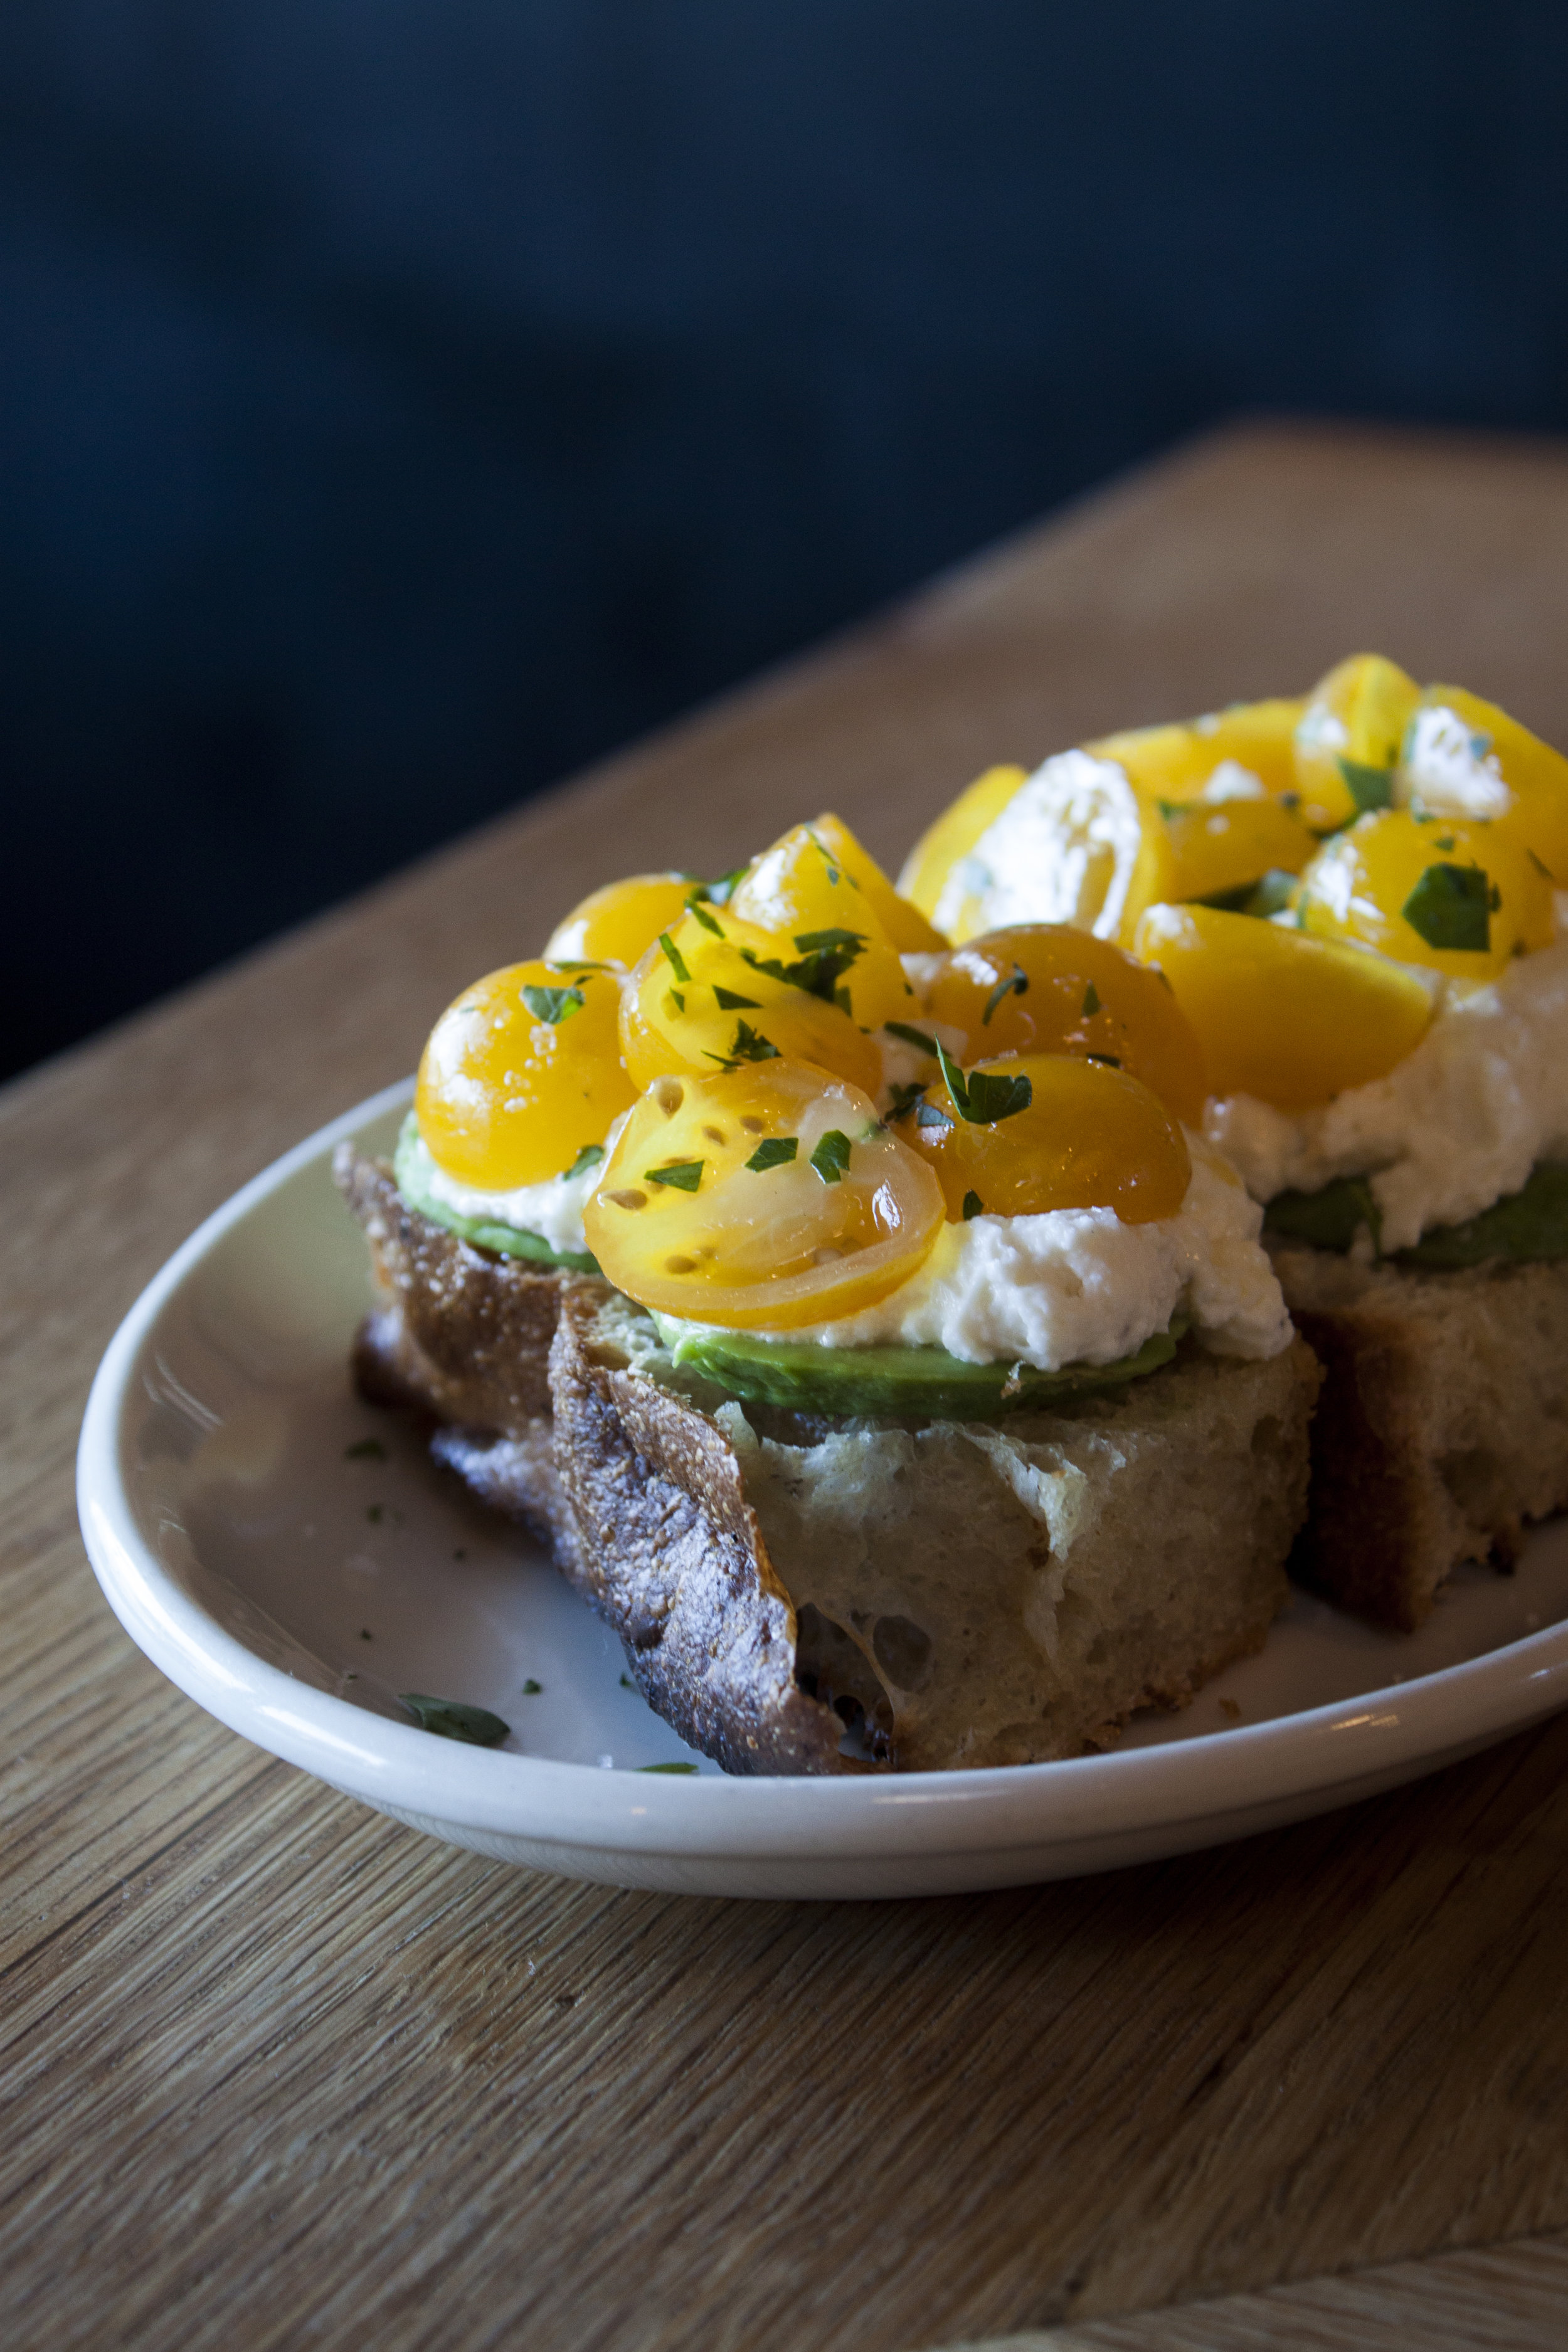 Avocado Toast at Odys Penelope. Where to eat avocado toast in LA. Top 10 Food Blogs. Top blog sites.